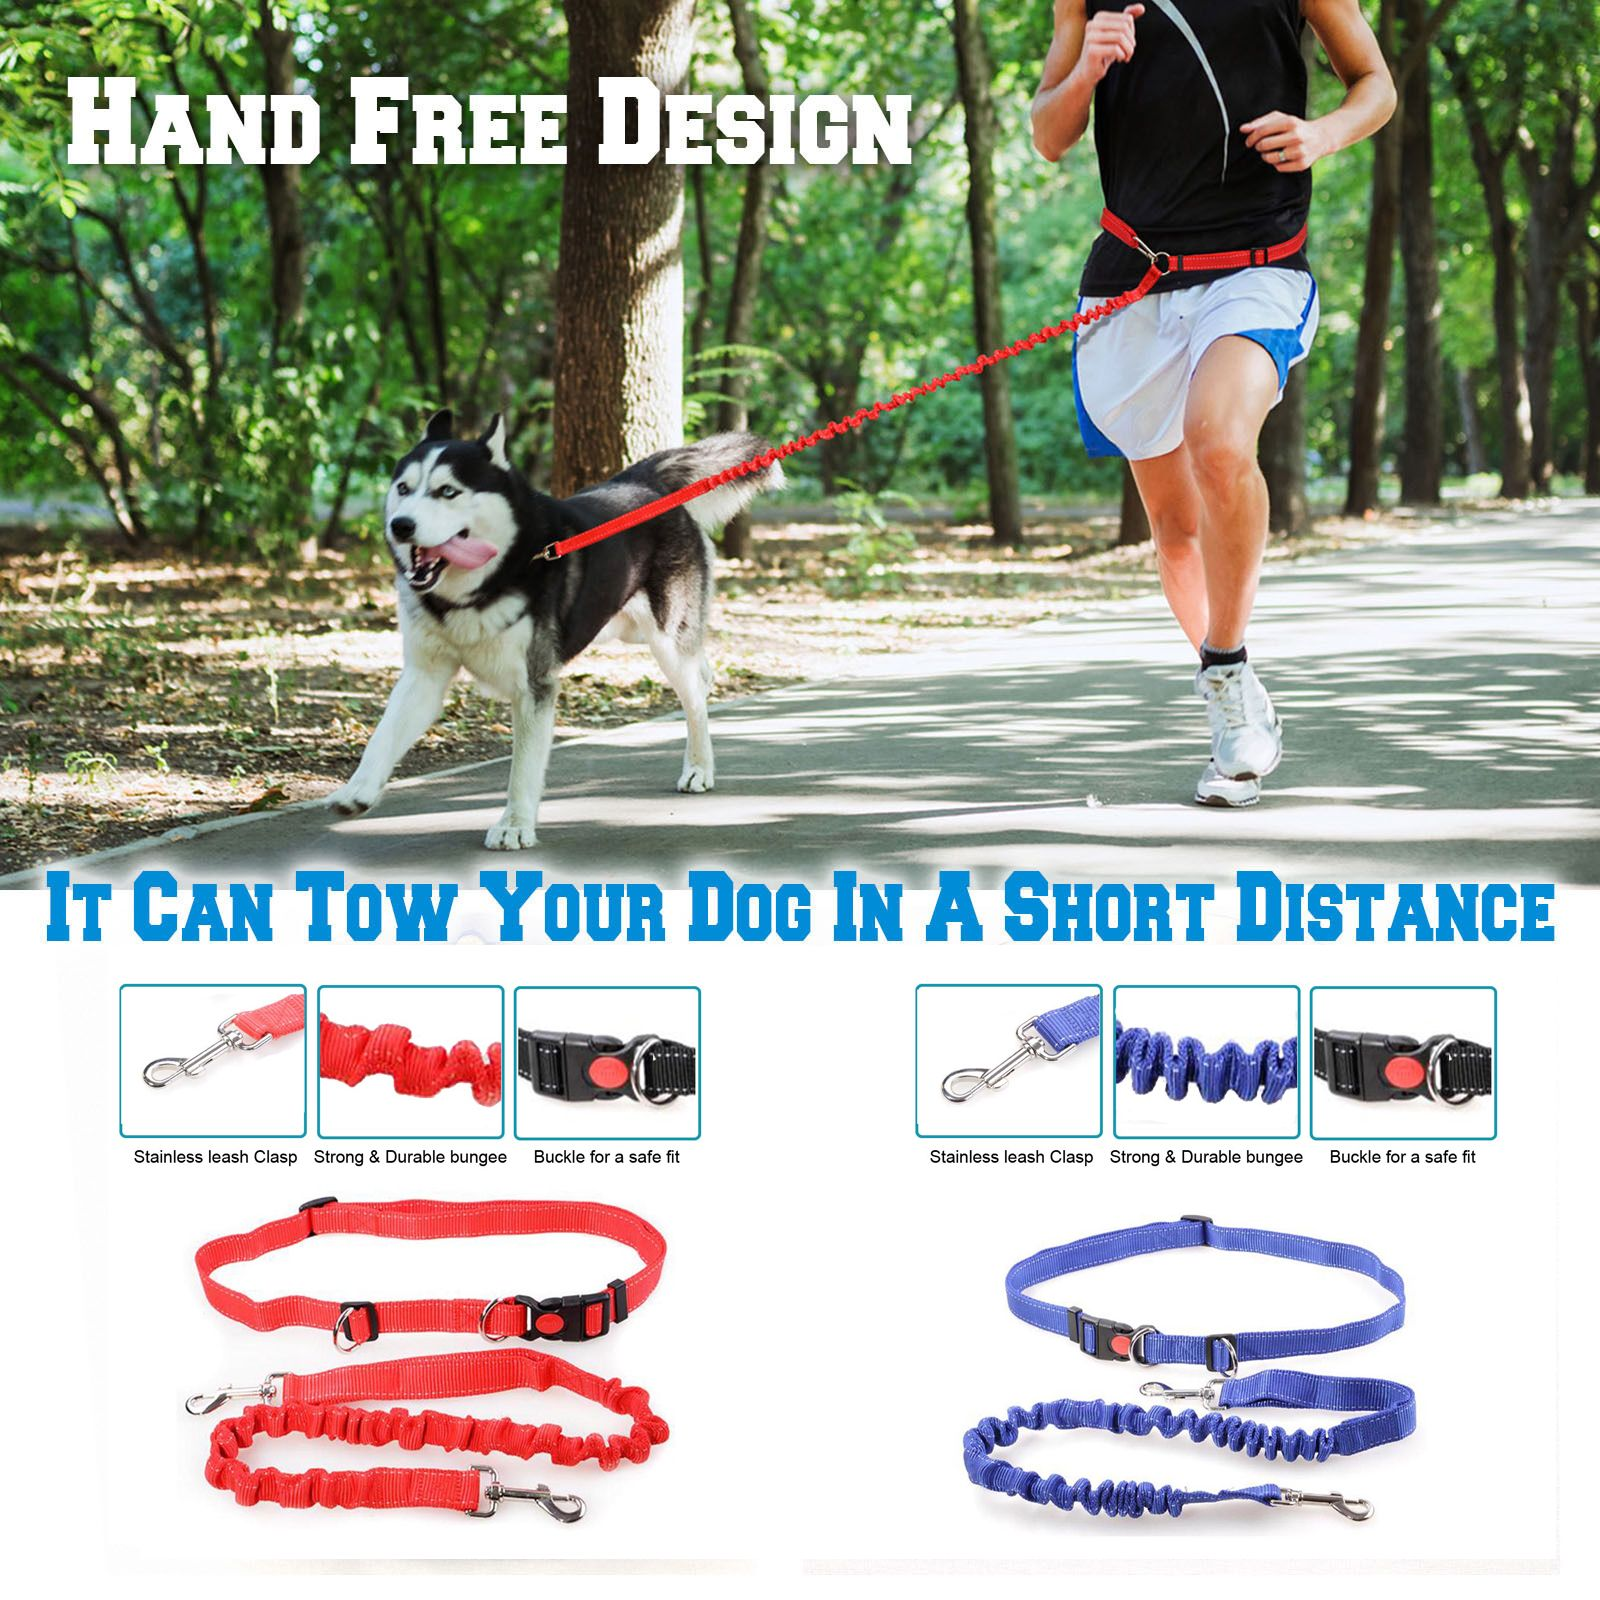 10 5 For Colormilky Hands Free Dog Leash Dogs Running Lead Bungee Blue In 2020 Hands Free Dog Leash Pet Training Dog Leash